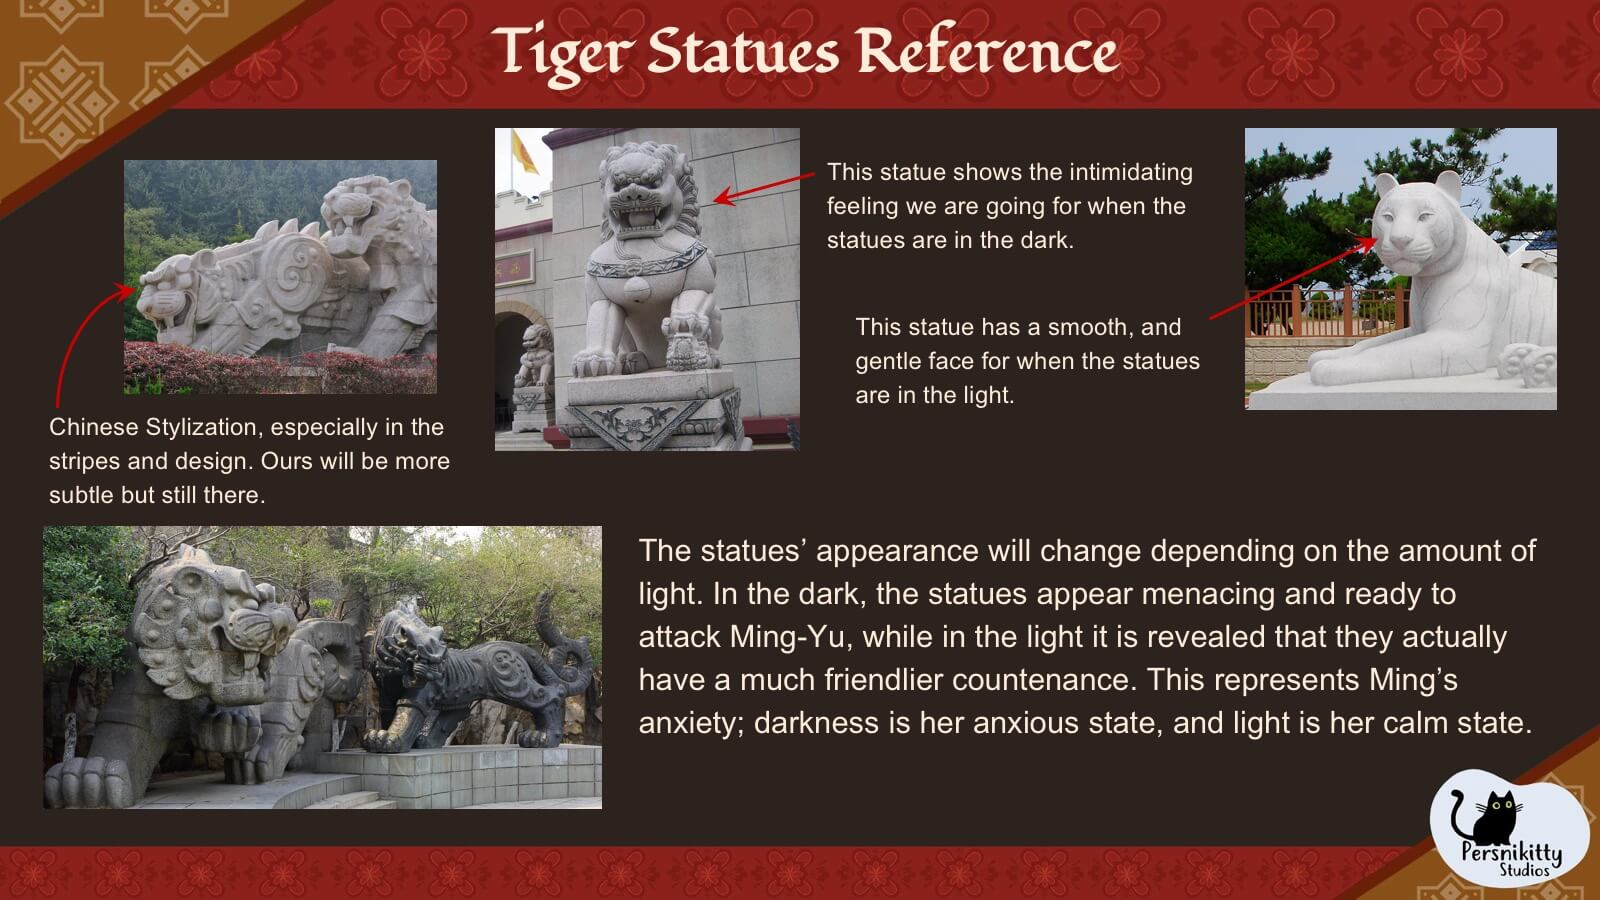 A slide displaying a variety of visual references for the design of the film's tiger statues.